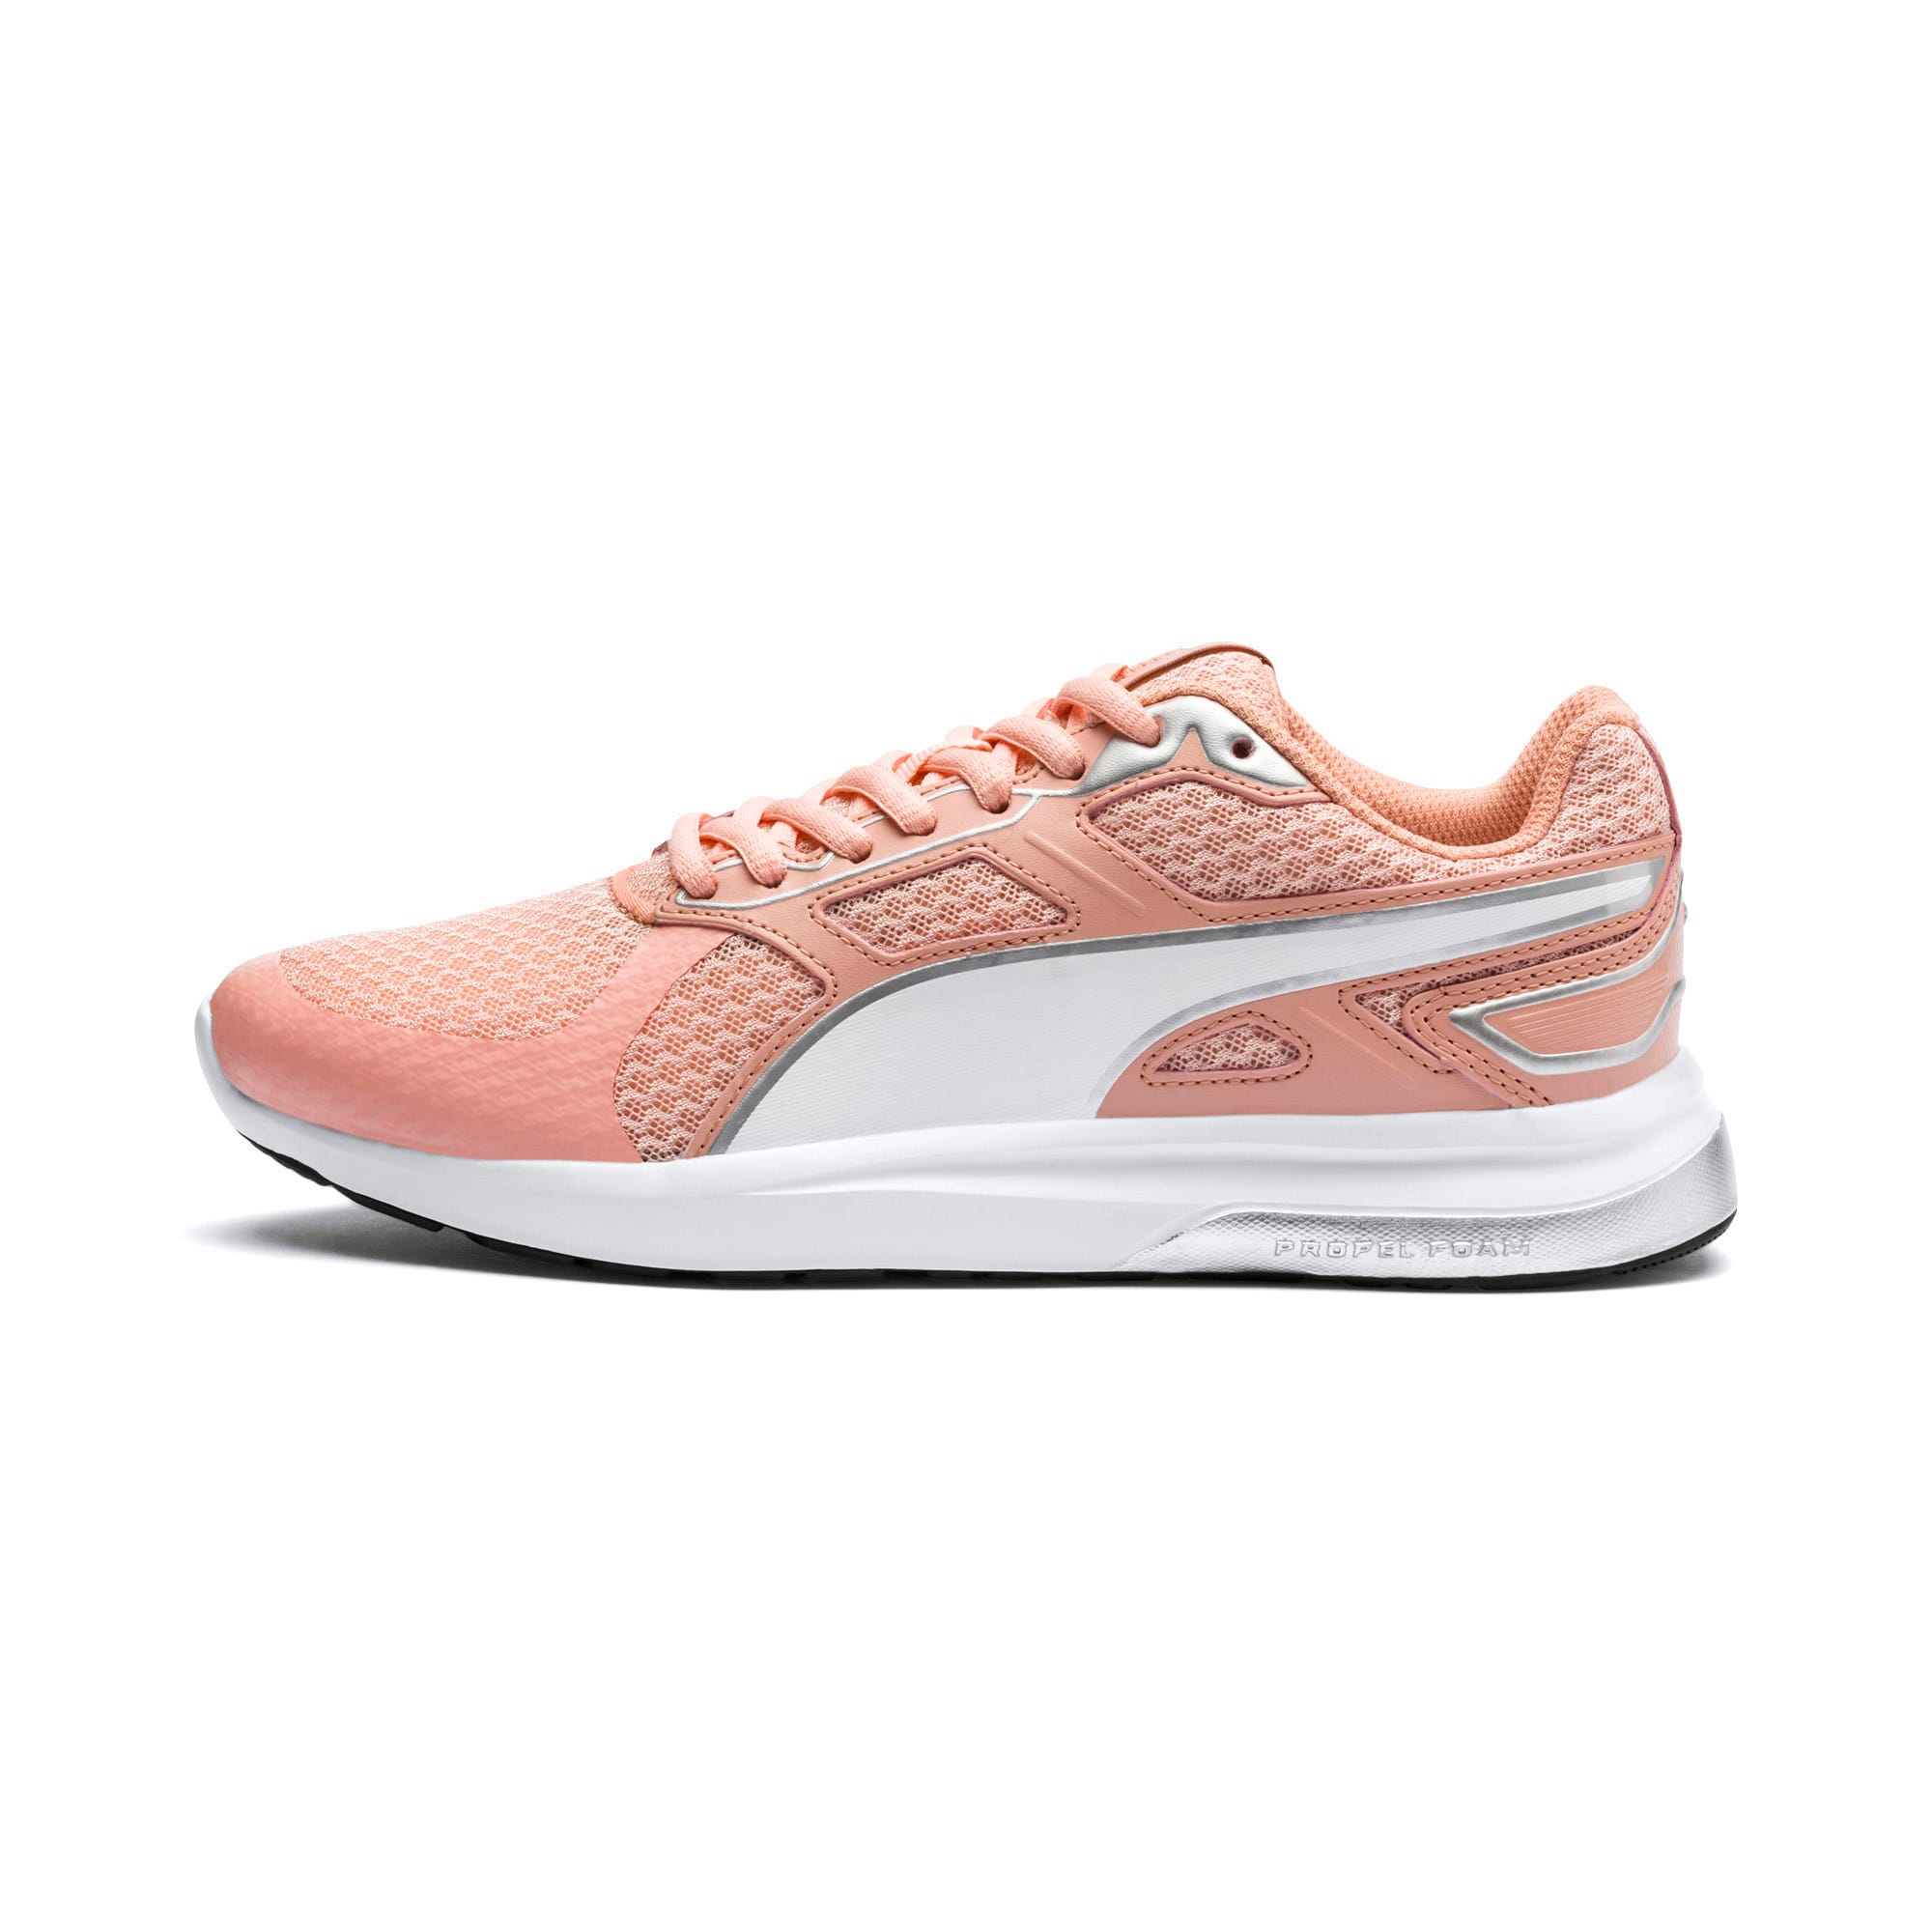 Thumbnail 1 of Escaper Tech Sneakers, Peach Bud-Silver-Puma White, medium-IND